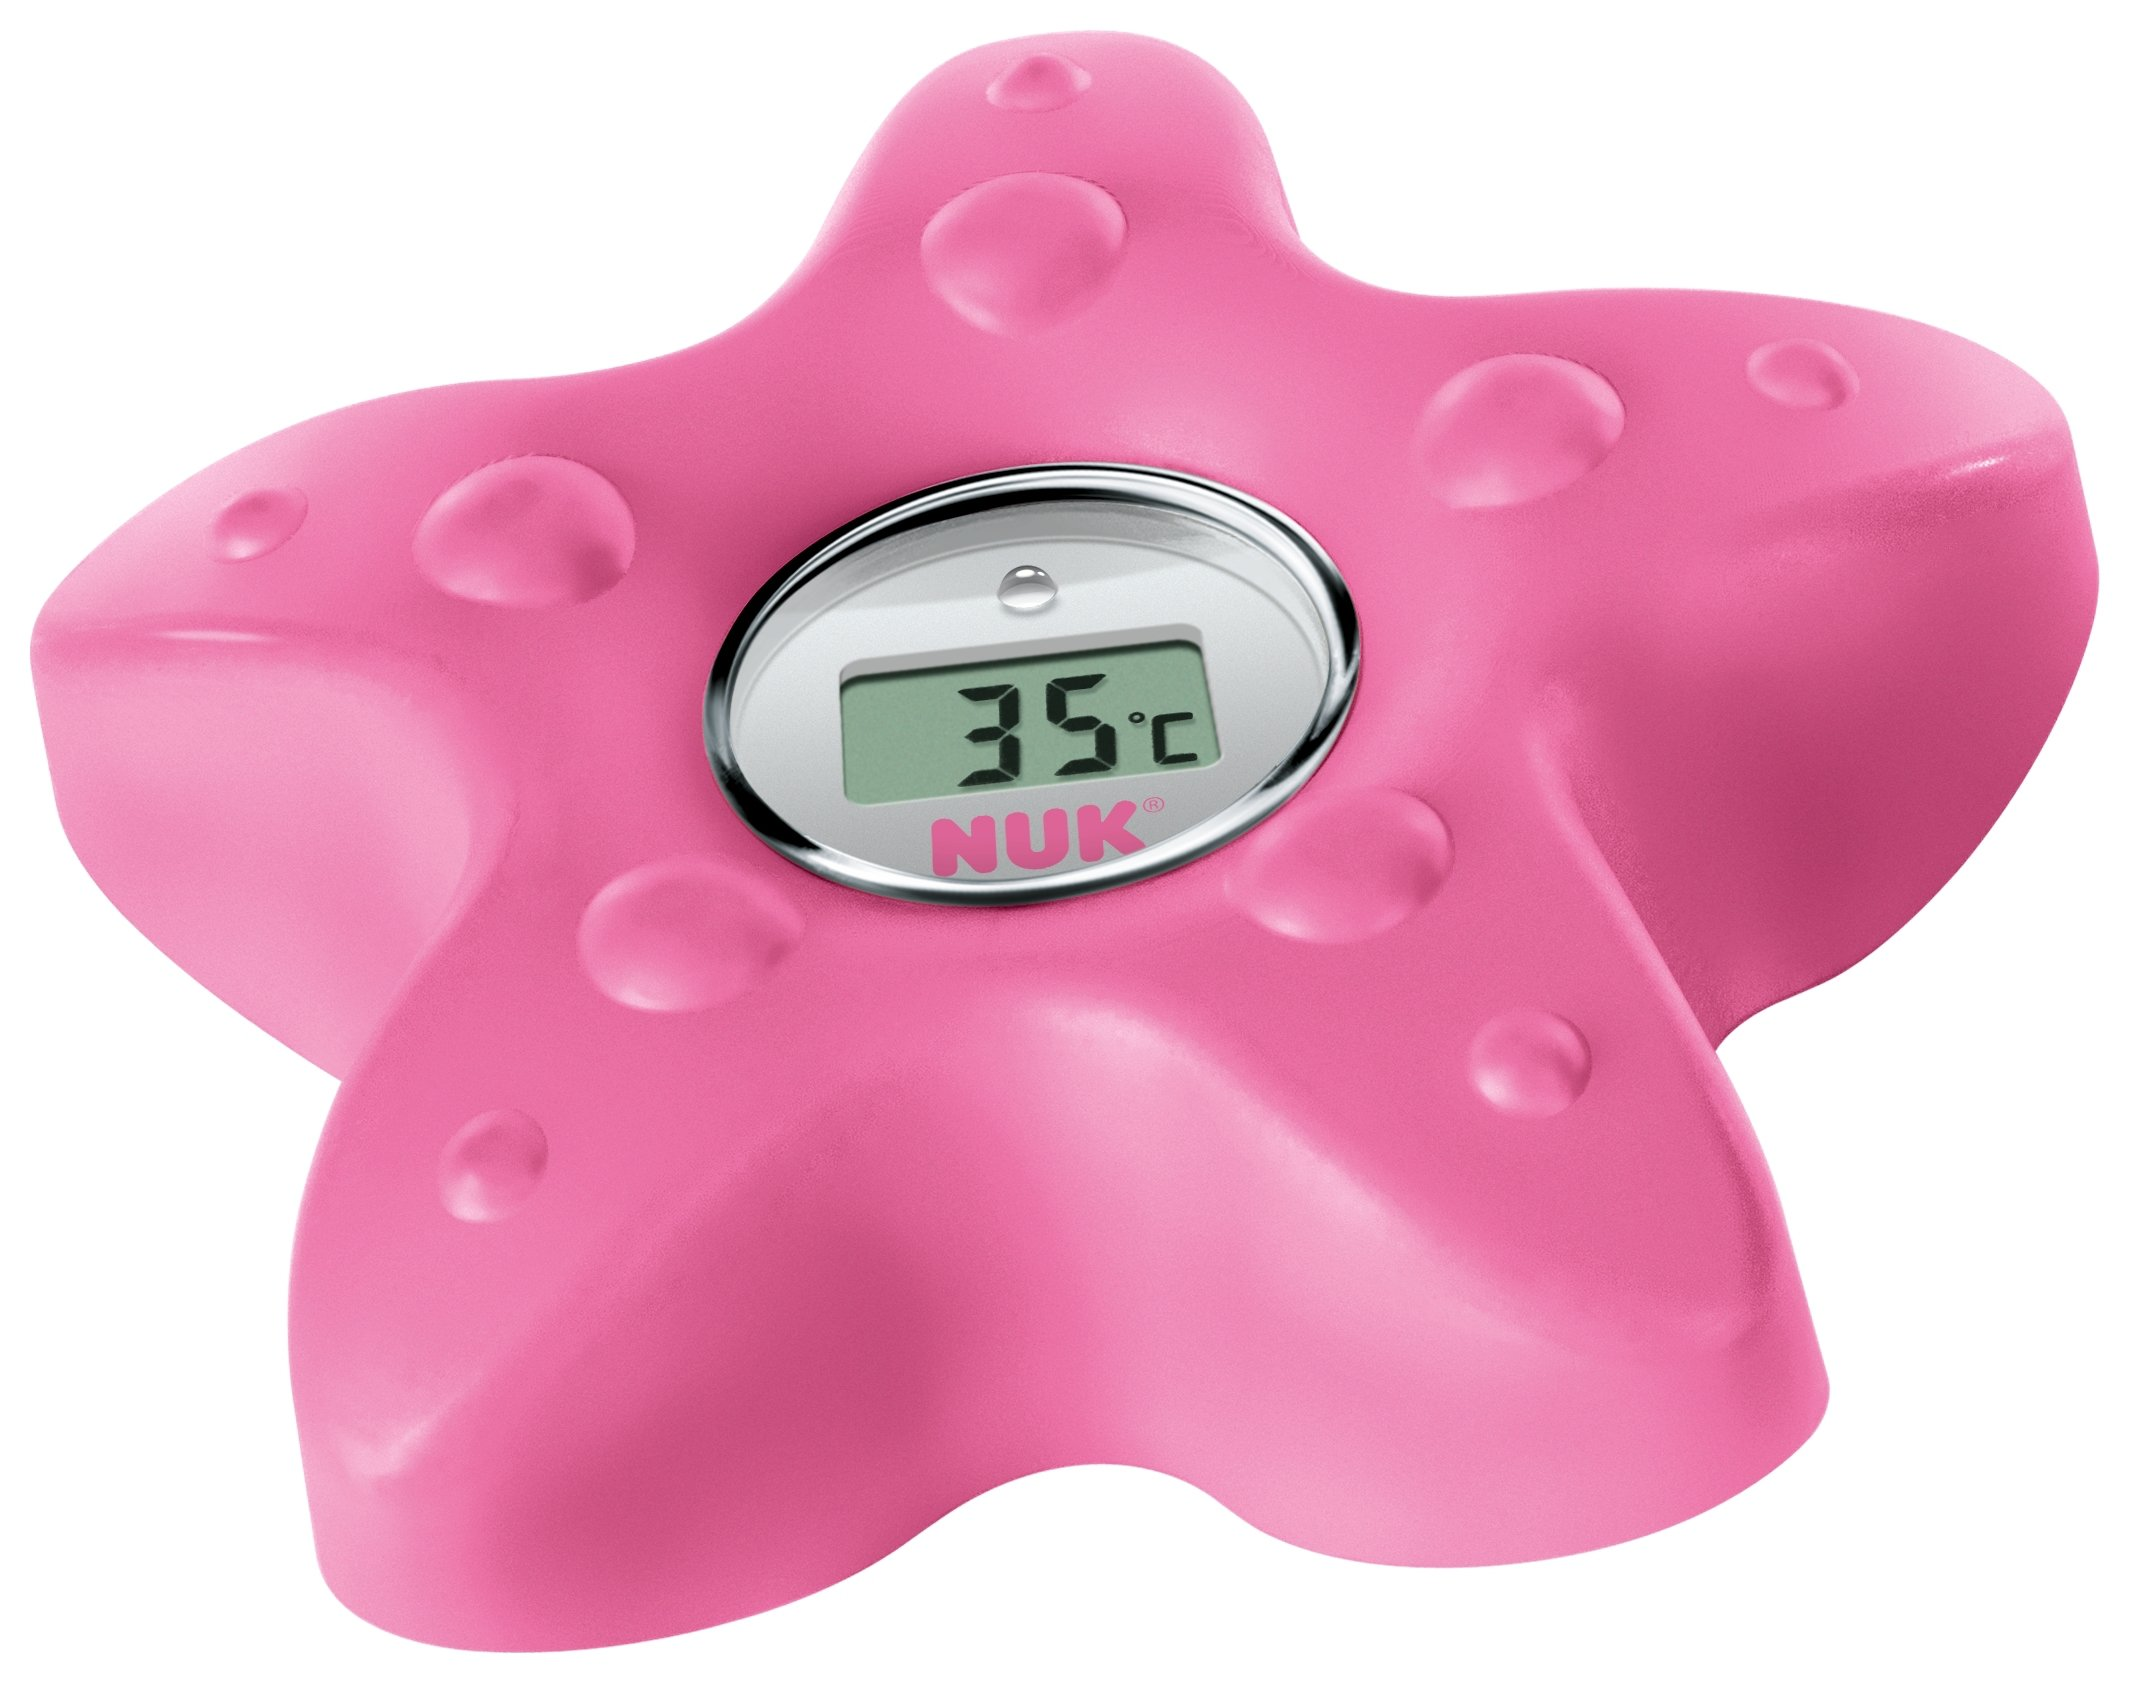 Image of NUK Digital LCD Bath Thermometer ??? Pink